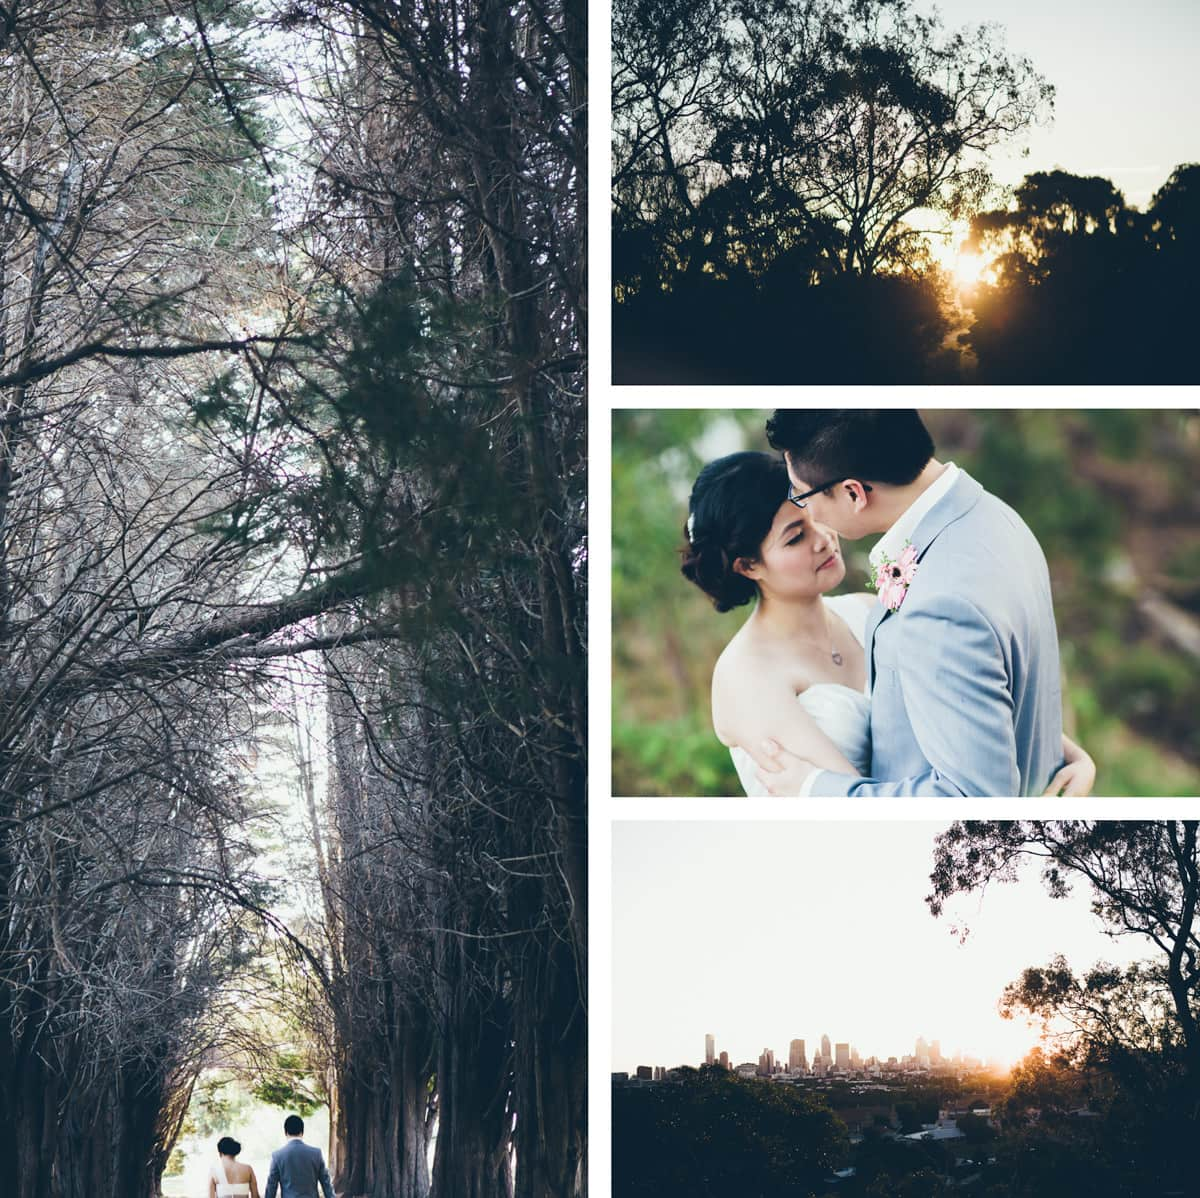 best asian wedding photographer in melbourne - location in kew (melbourne - studley park) tree line and wedding couple